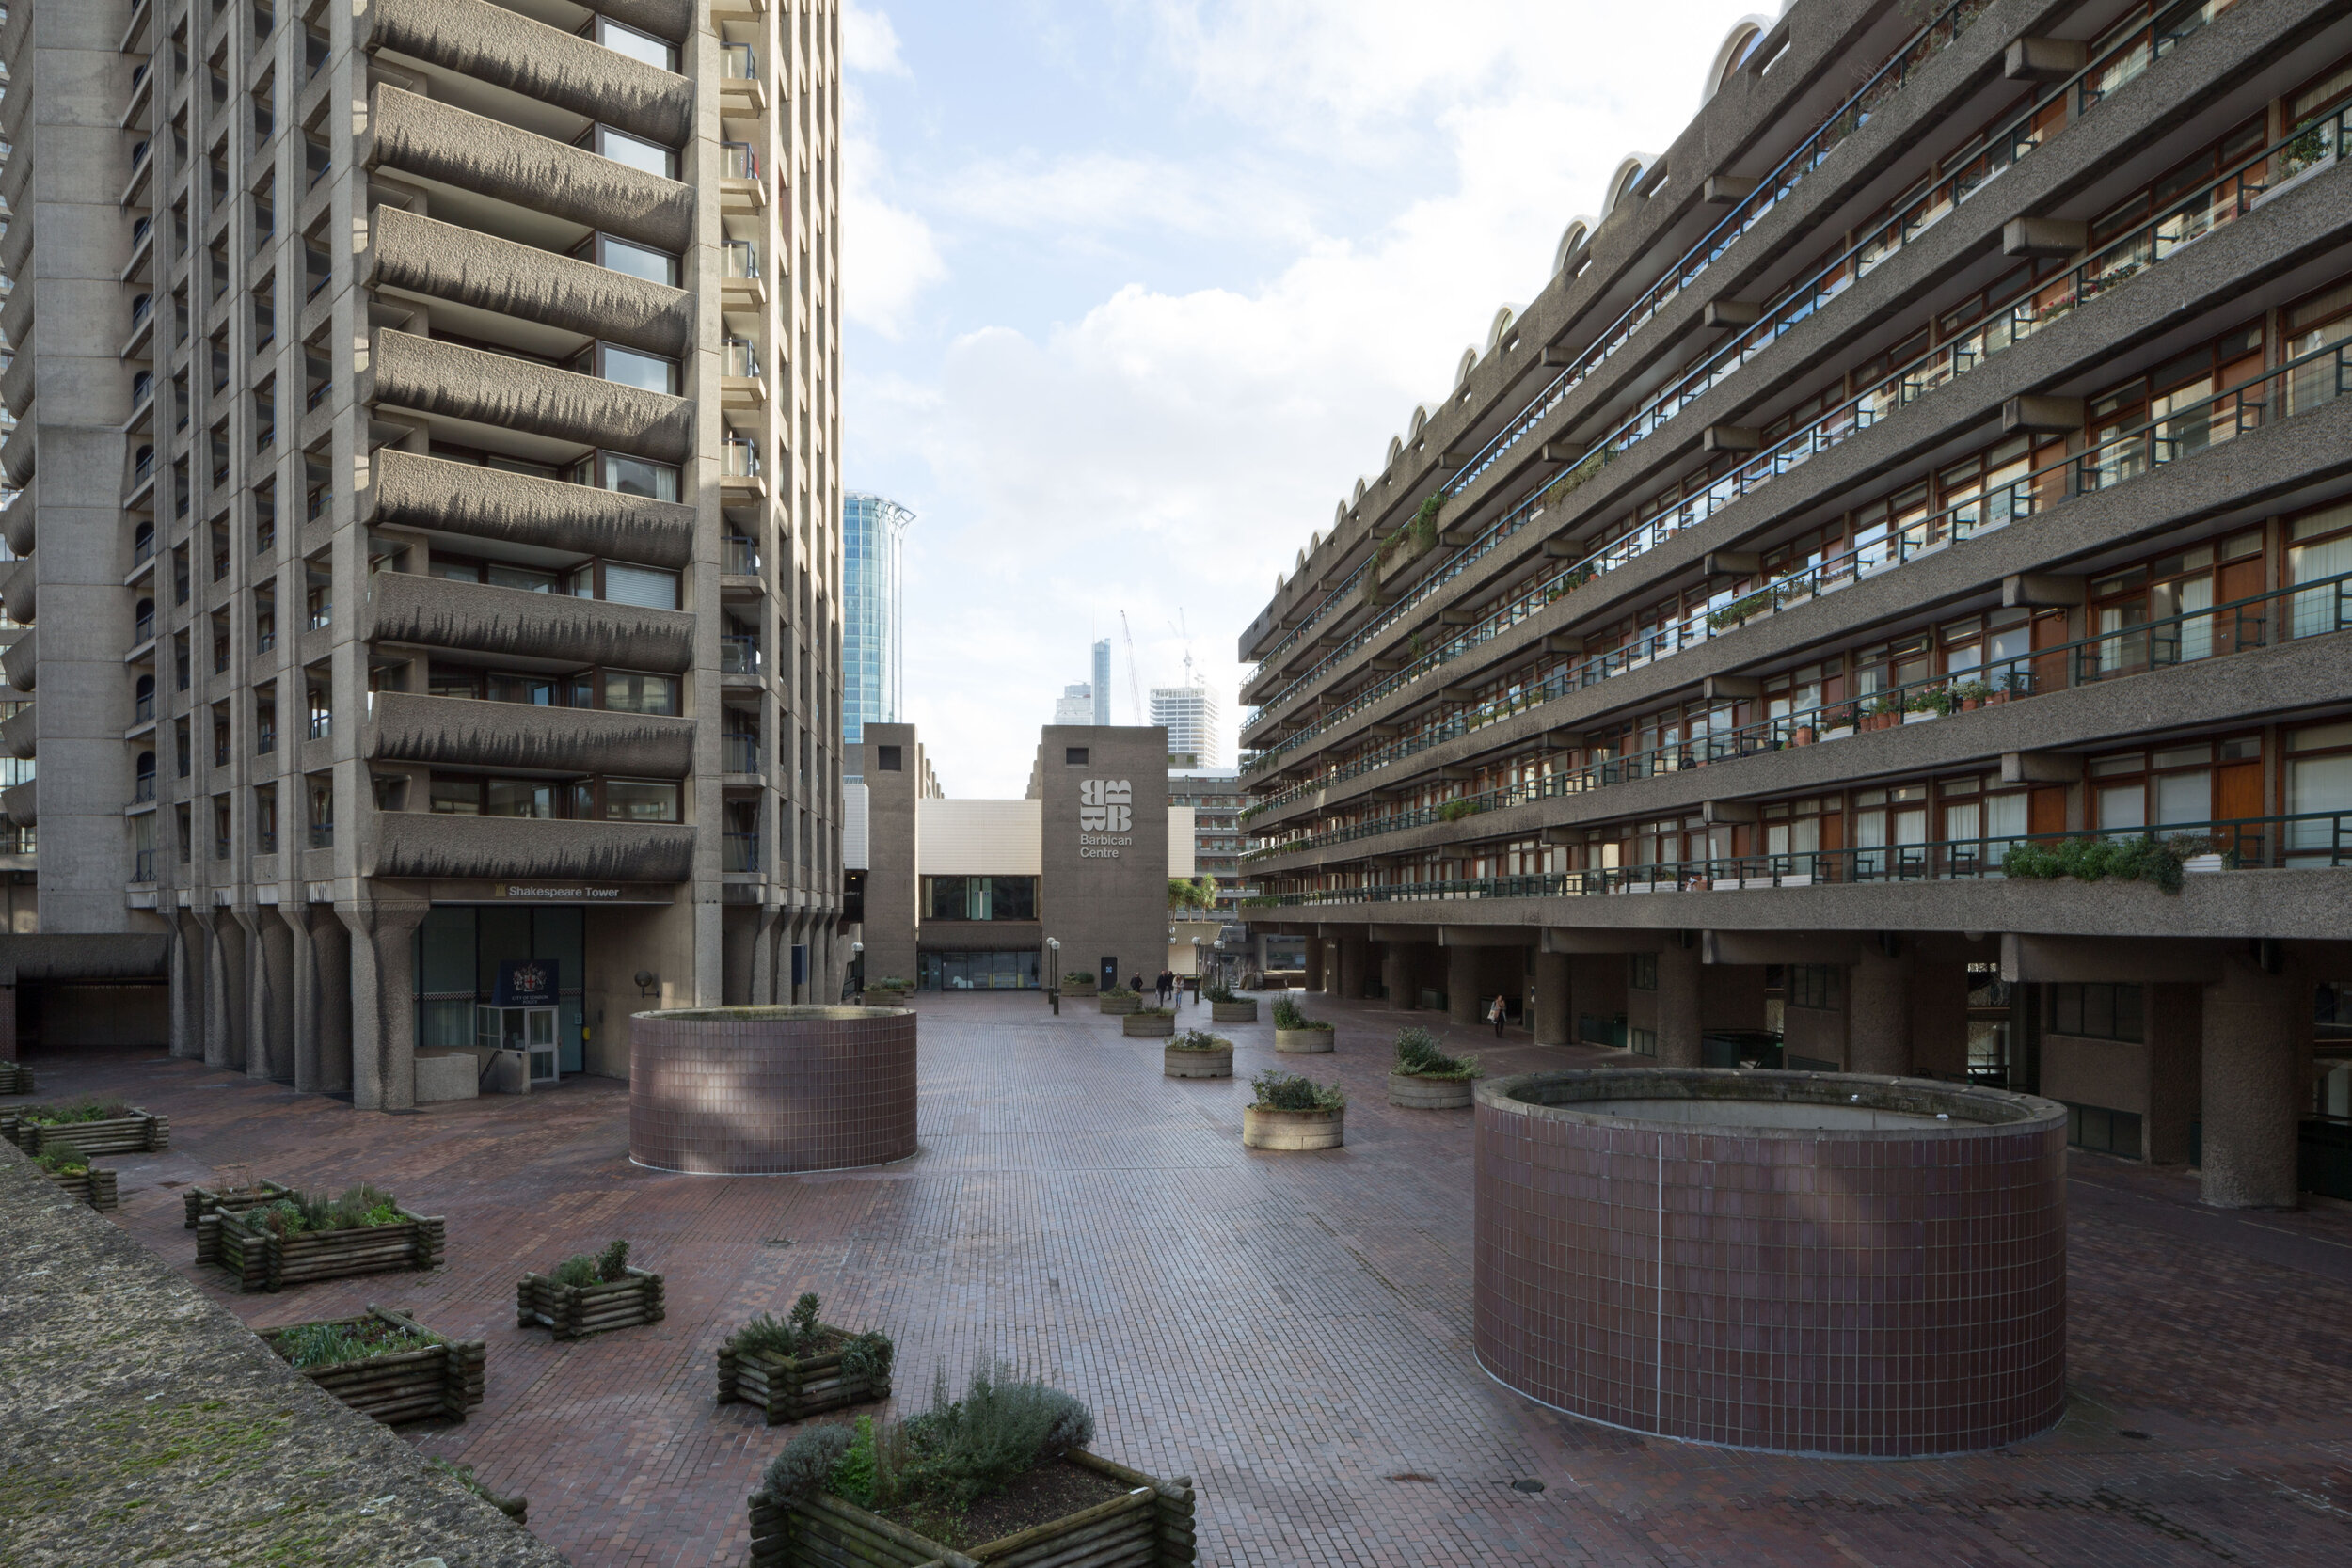 The Barbican Center 180125 043.jpg